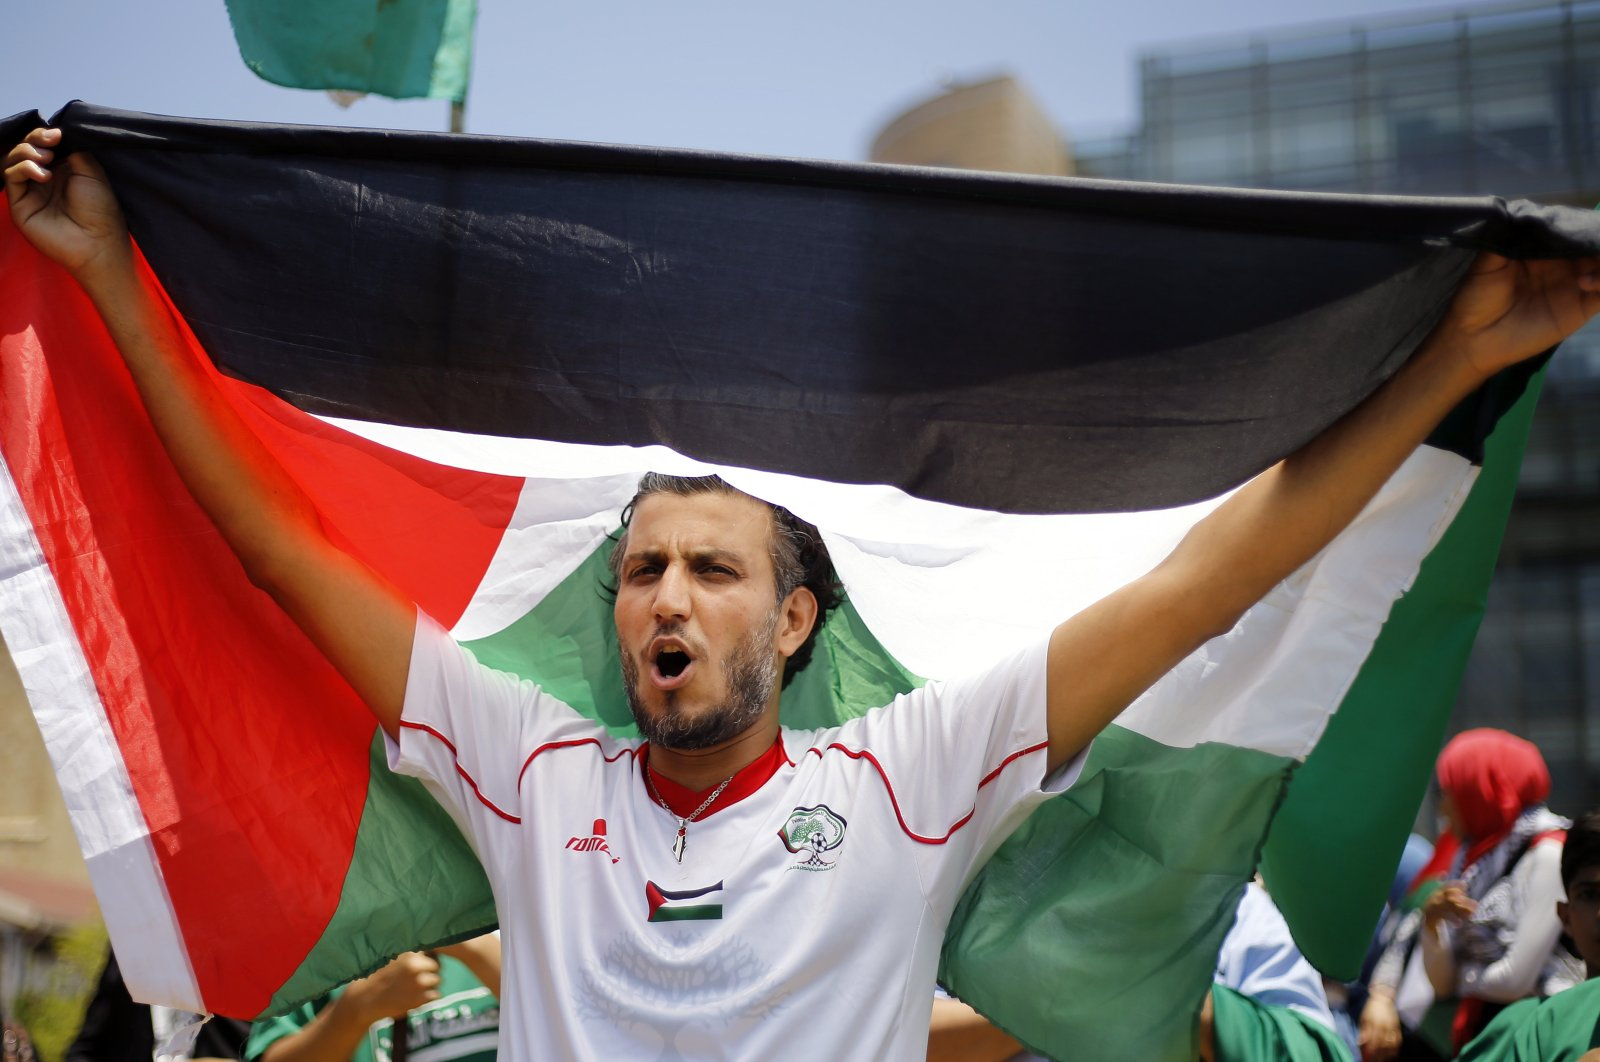 A Palestinian holds up a flag of Palestine as he chants slogans during a demonstration organized by the Hamas group in front of the United Nations headquarters in Beirut, Lebanon, June 25, 2019. (AP Photo)